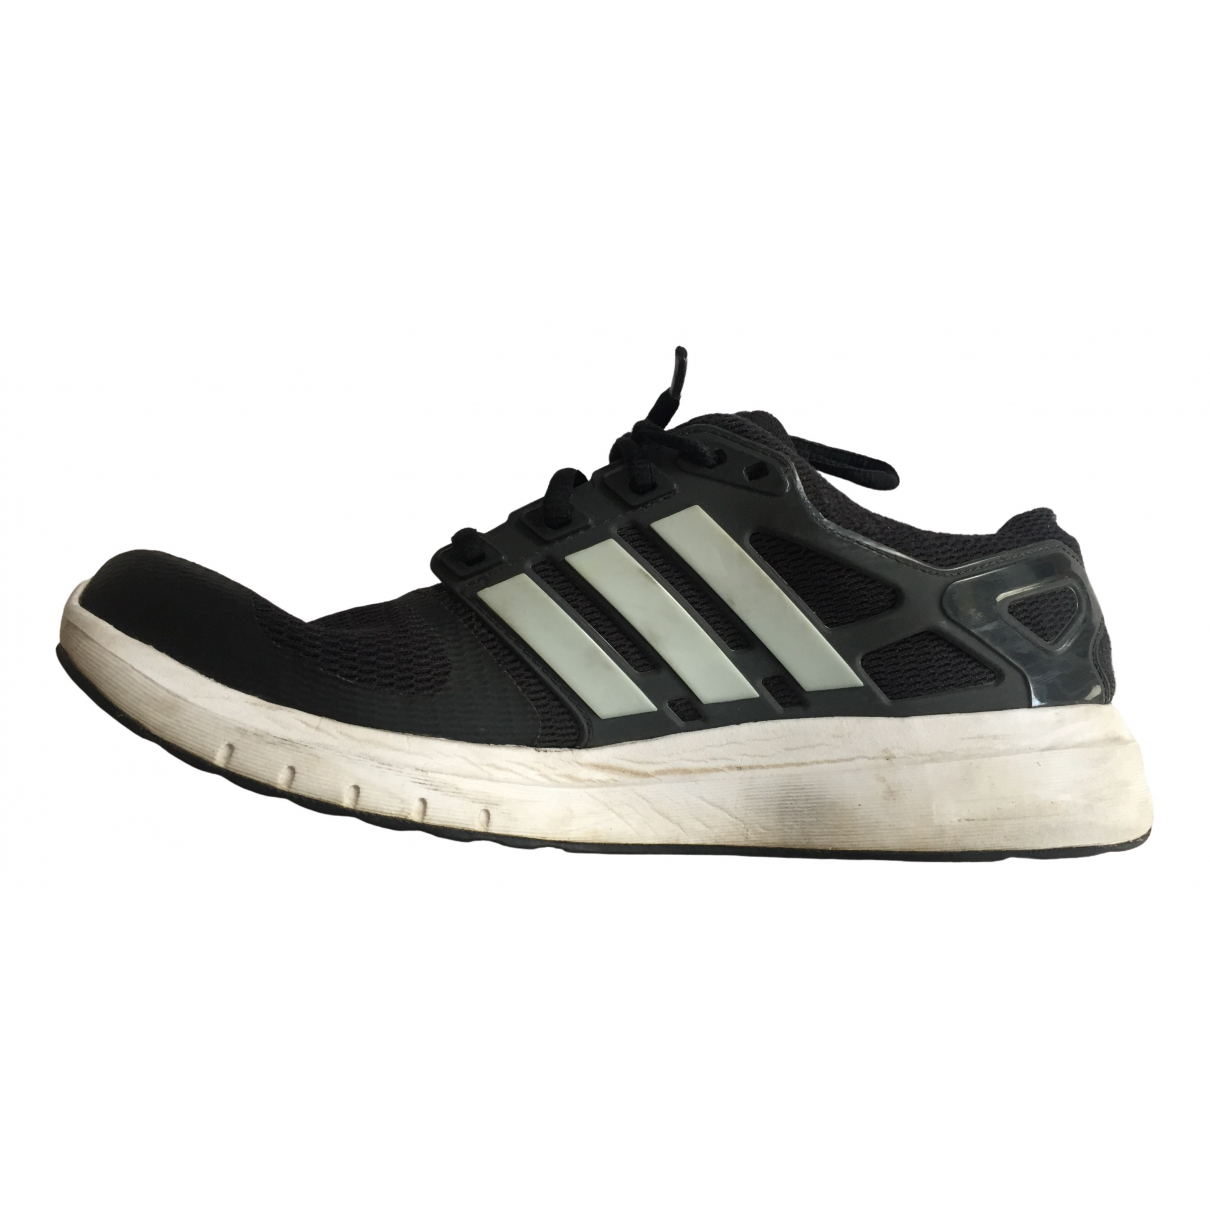 Adidas \N Black Cloth Trainers for Women 6.5 UK